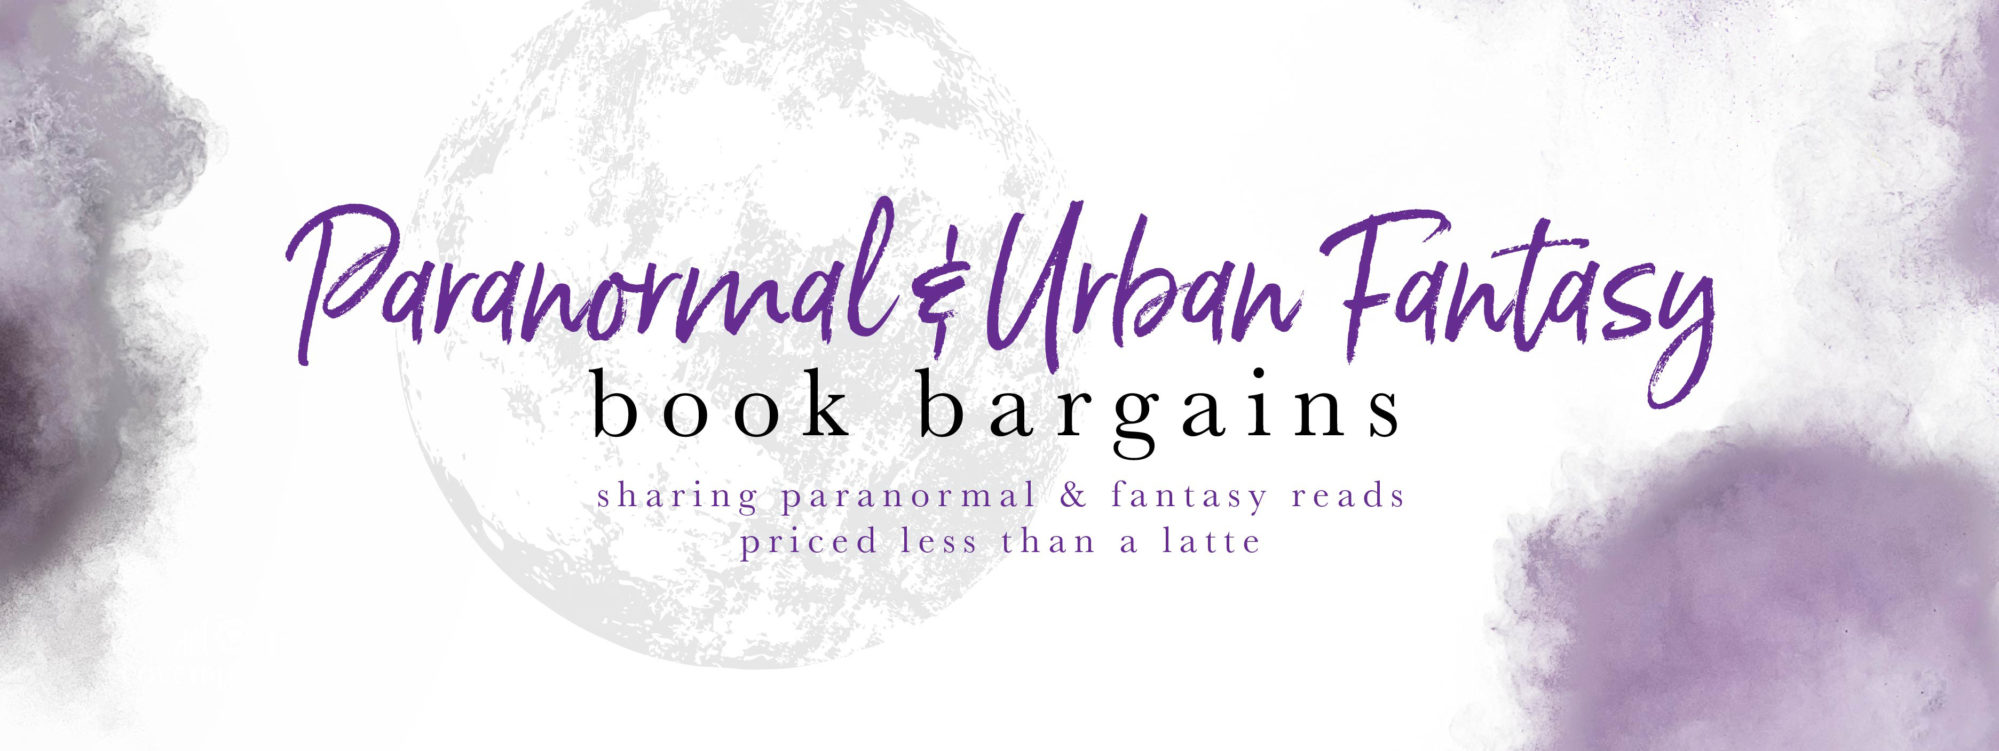 Paranormal and Urban Fantasy Bargains